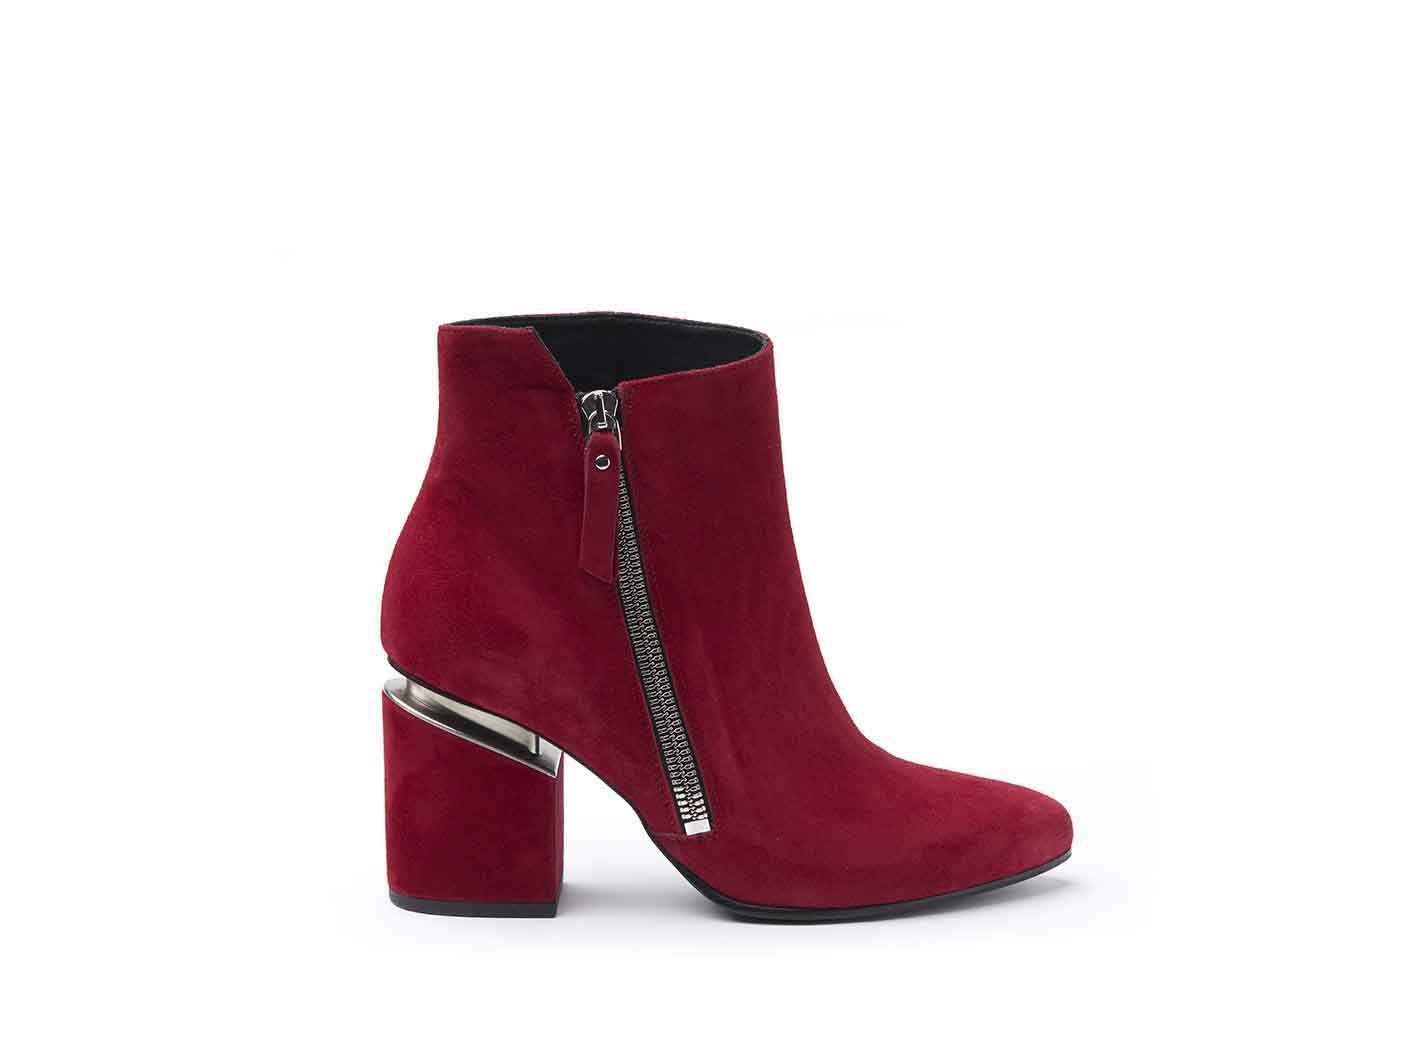 Red suede heeled ankle boots